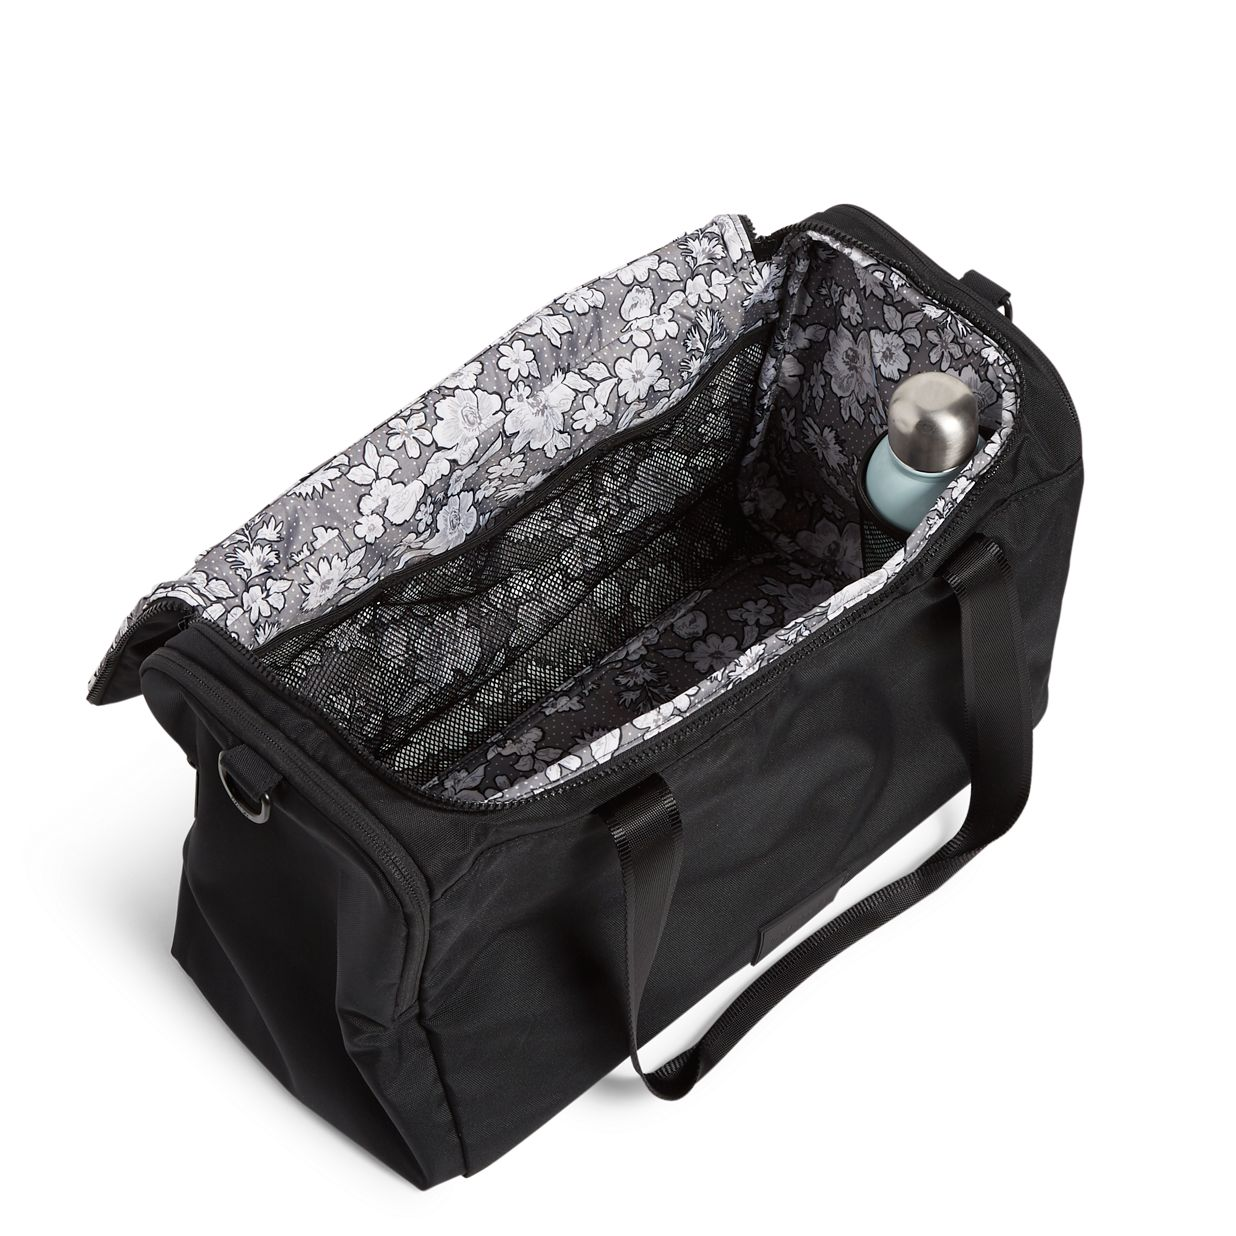 Simple Color : Gray, Size : 22 Soft Case Simple and 20 Inches Rotating Suitcase Hengtongtongxun Carry Suitcase Black The Latest Style